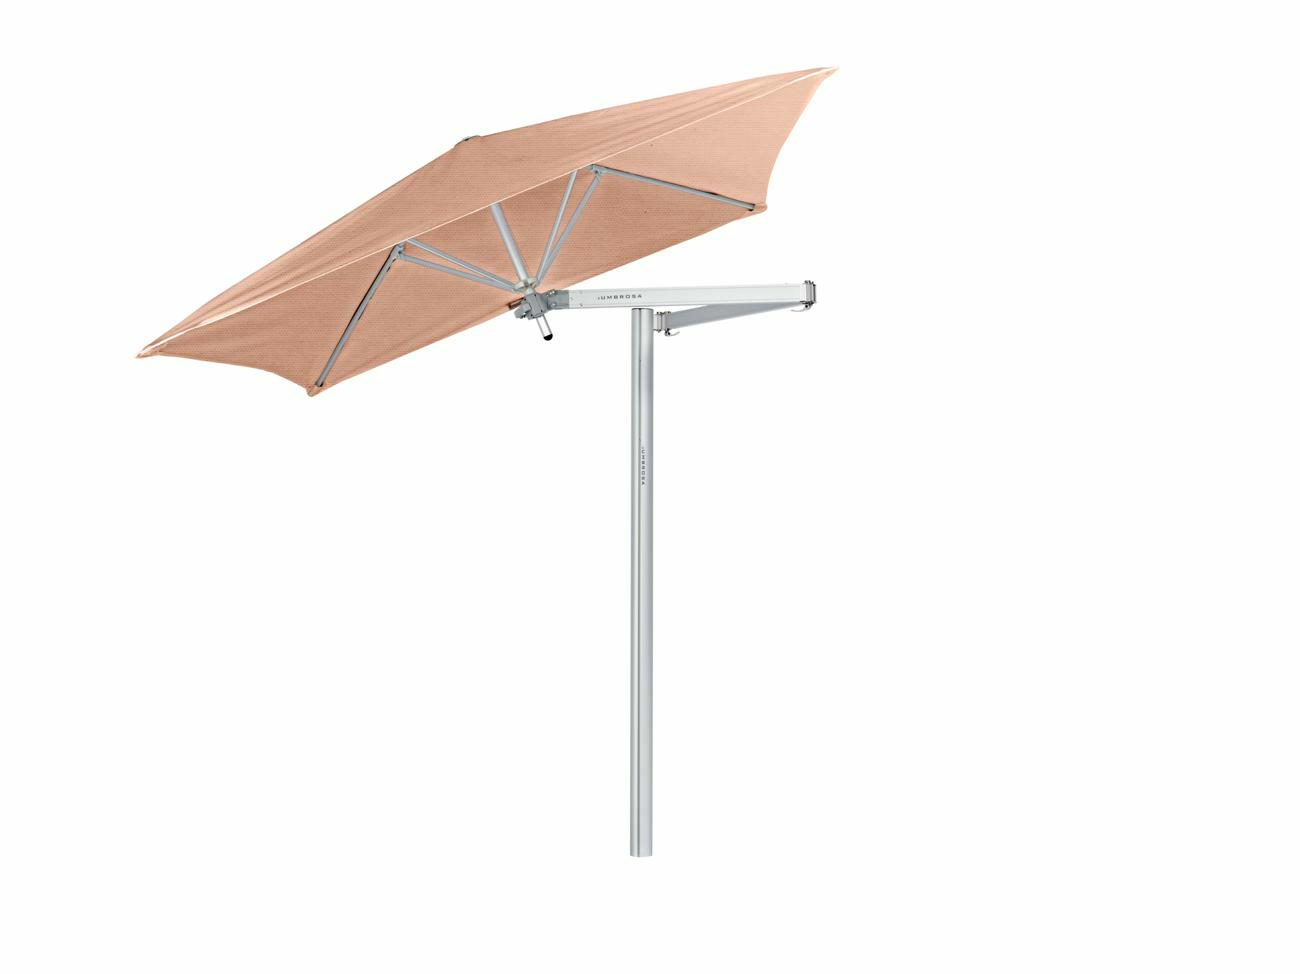 Paraflex cantilever umbrella square 1,9 m with Blush fabric and a Neo arm